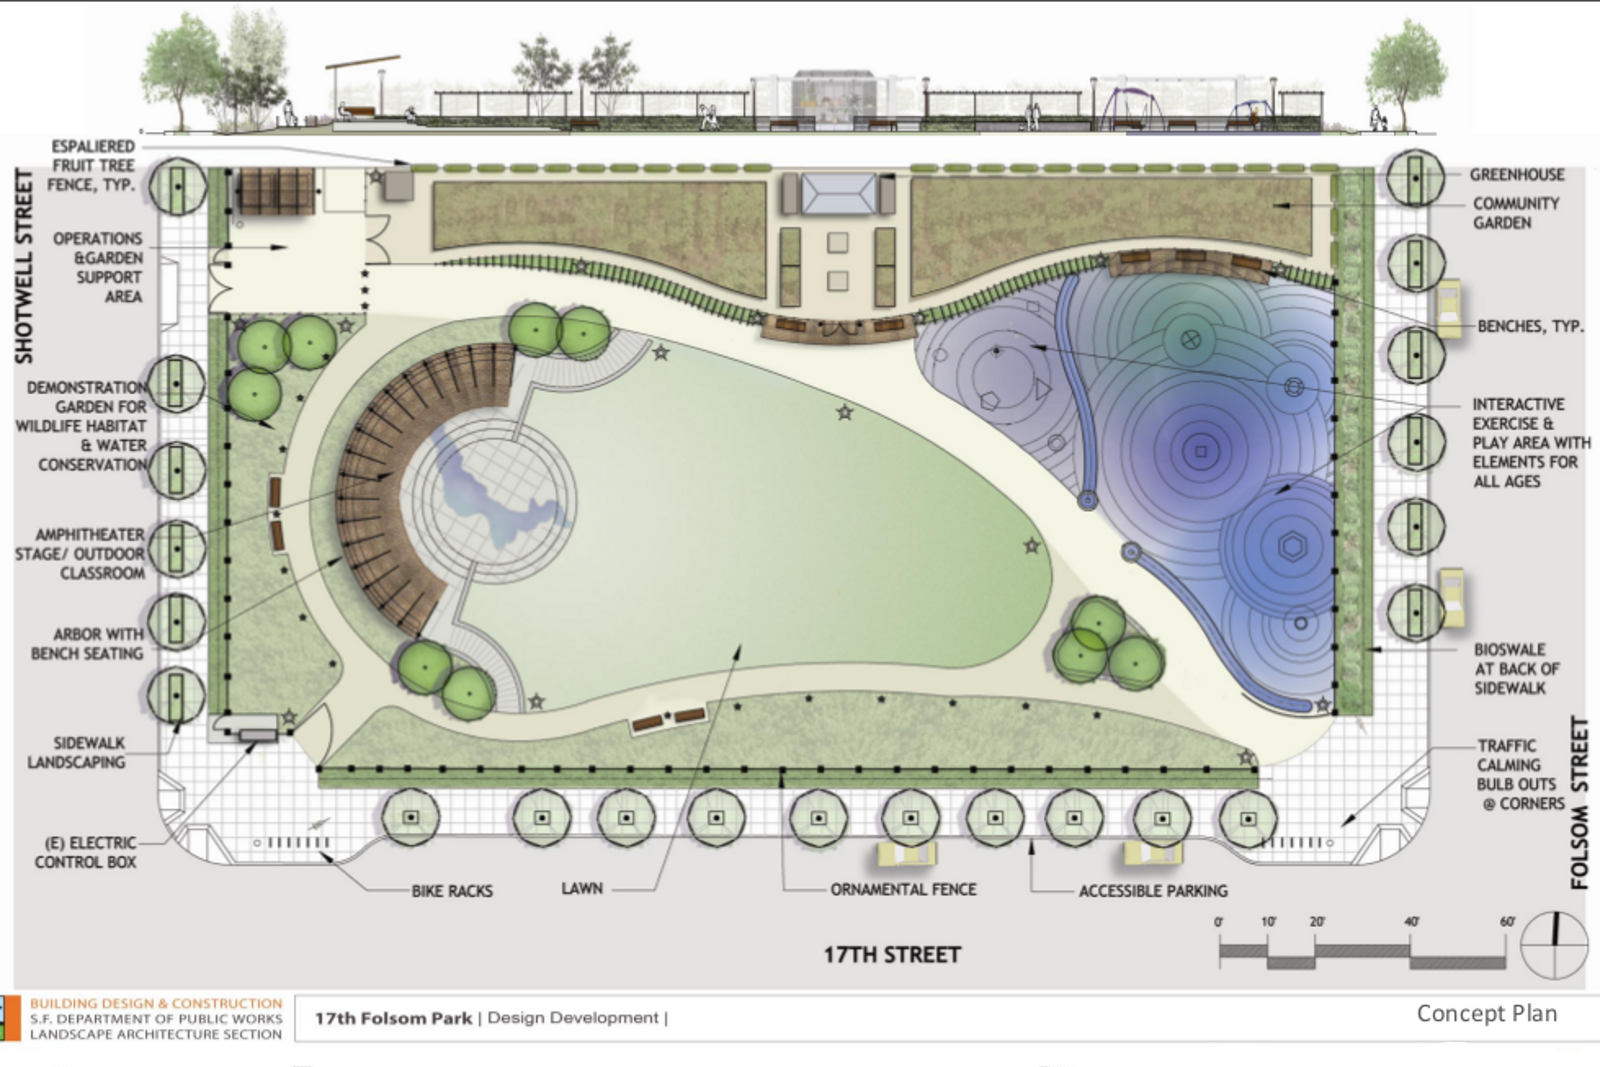 17th and Folsom Park to Get Shared Garden Space